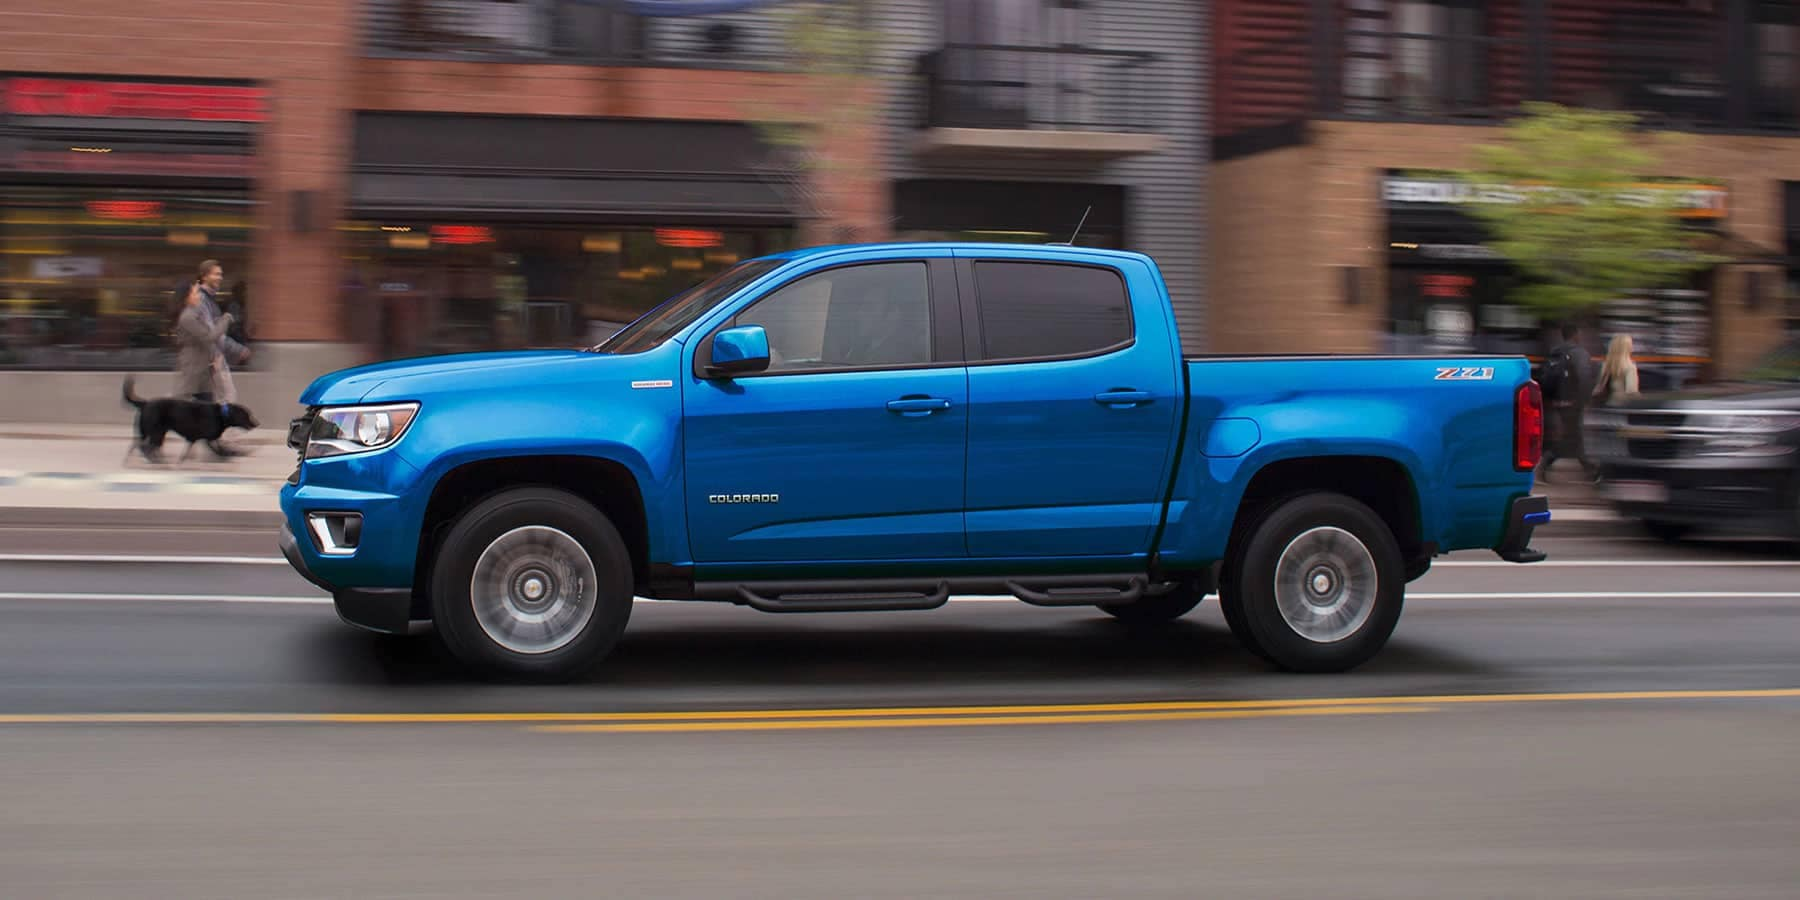 2019-Chevrolet-Colorado-Driving-Down-The-Busy-Street